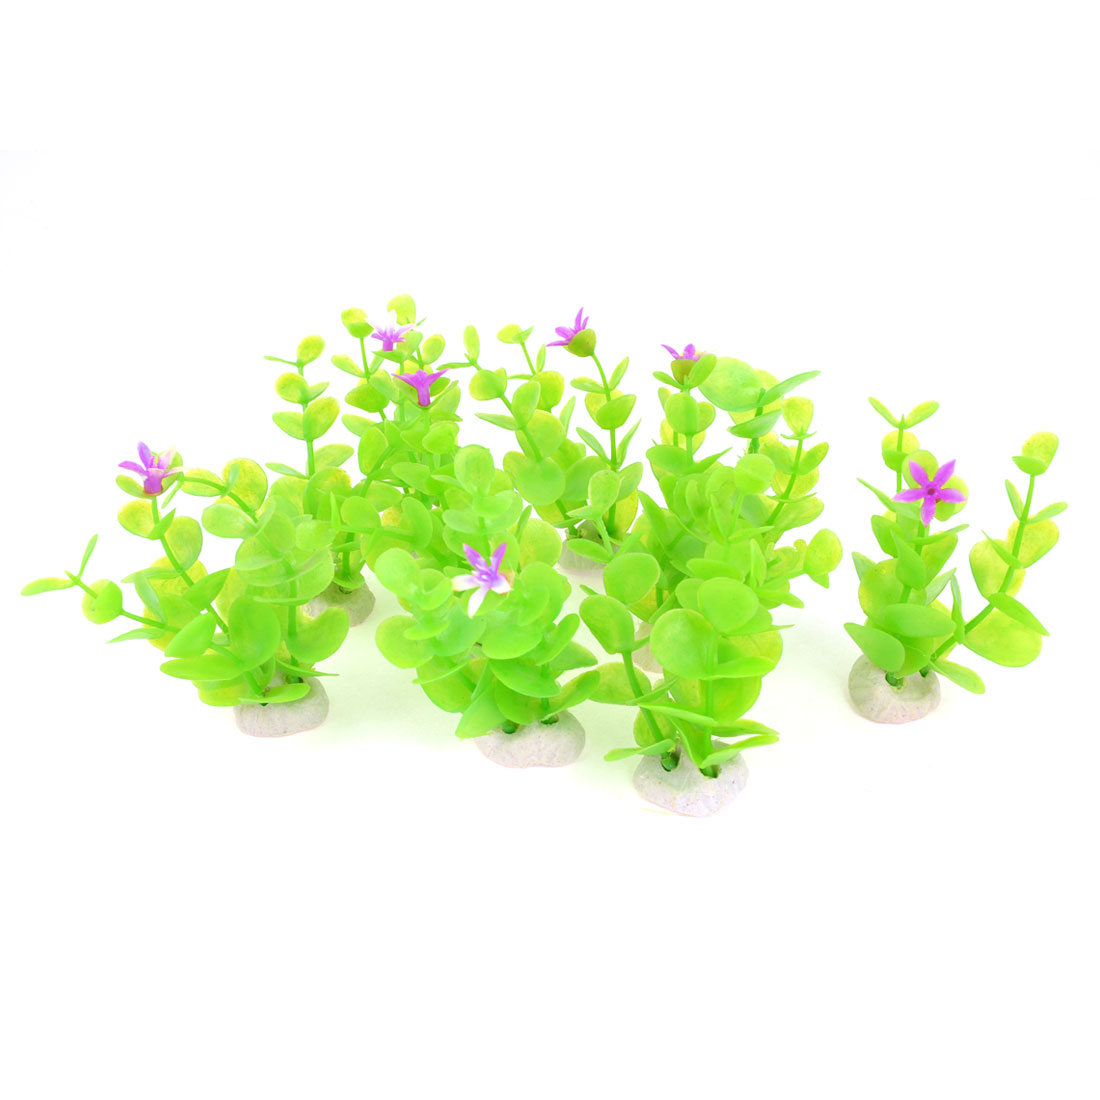 10pcs Fish Tank Aquascaping Emulational Purple Flower Decor Water Plant 4.7""